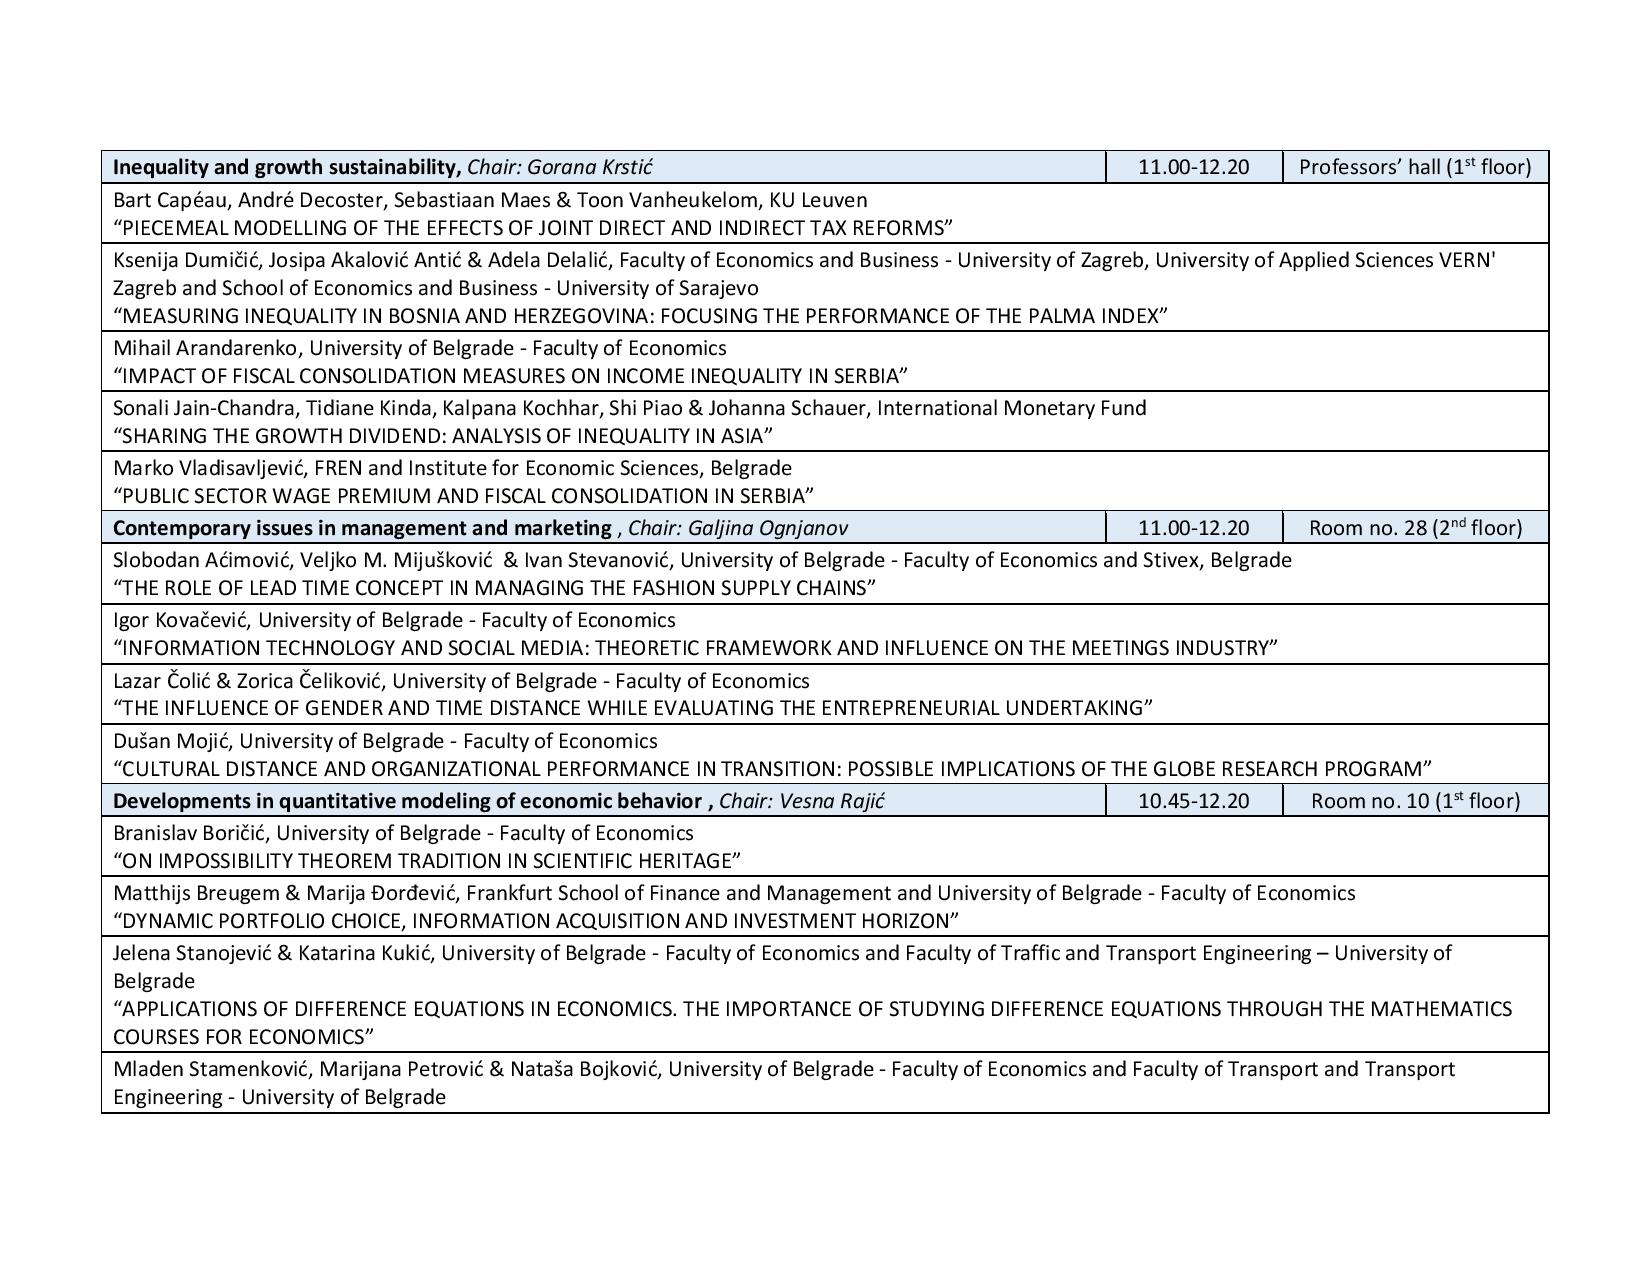 Conference program_Faculty of Economics (University of Belgrade)_draft-page-005